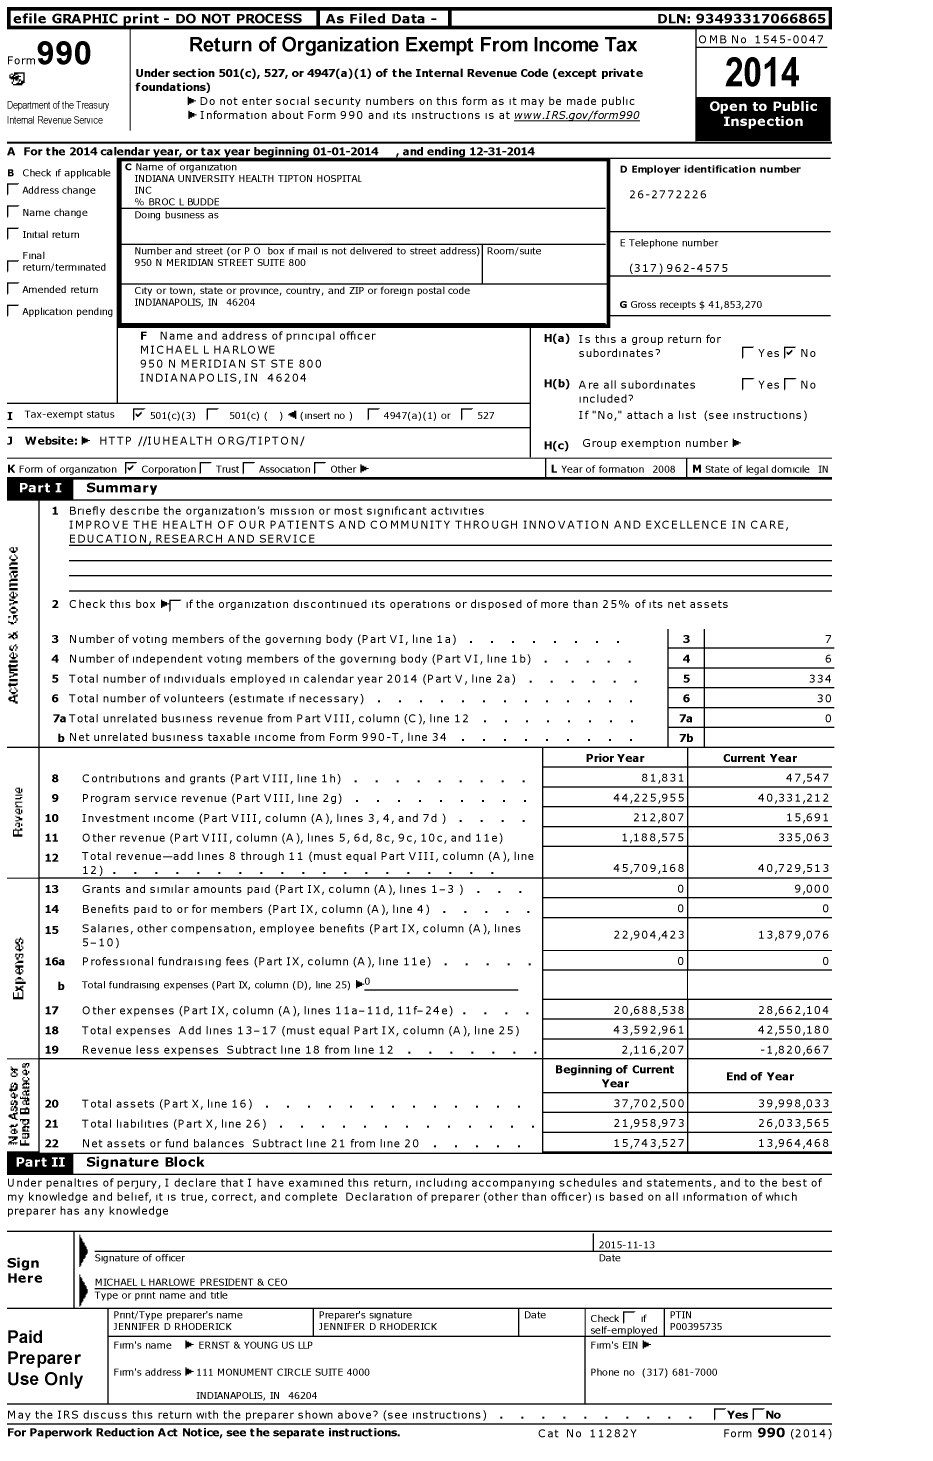 Image of first page of 2014 Form 990 for IU Health Tipton Hospital